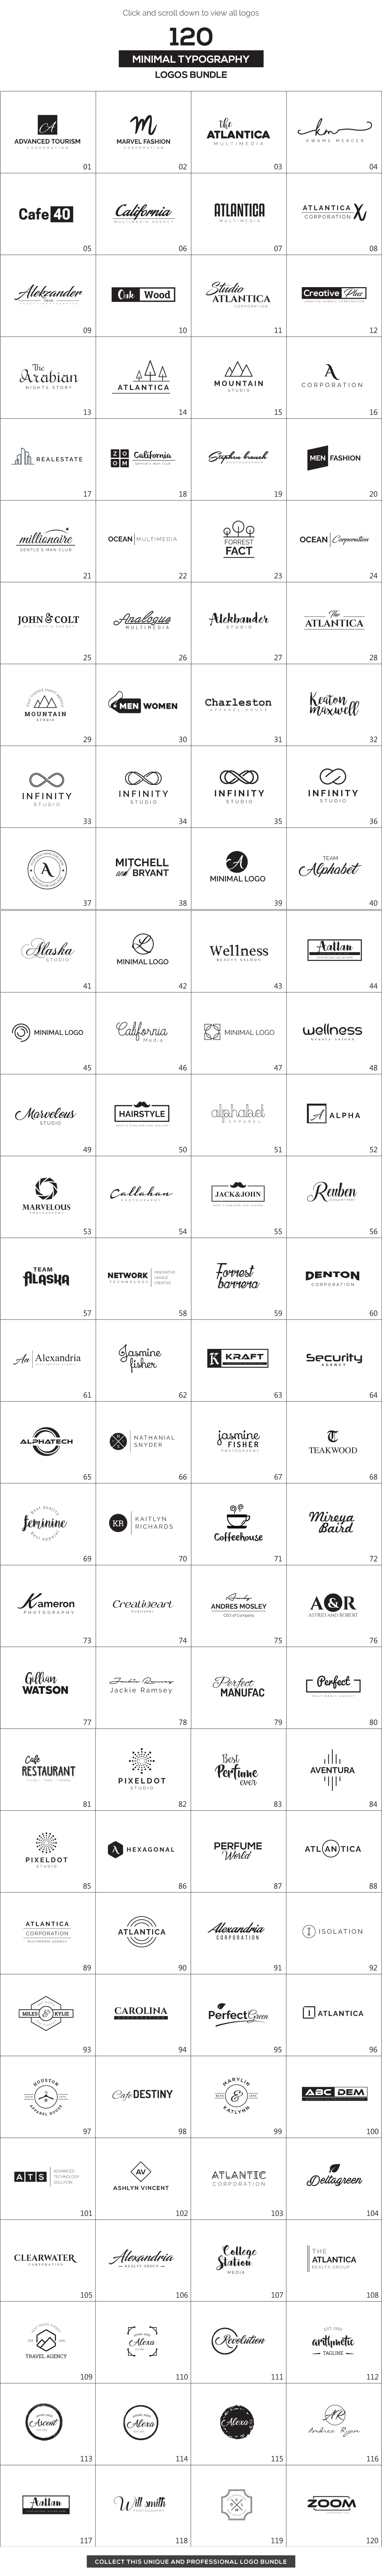 A large collection of logo options for different areas of business.